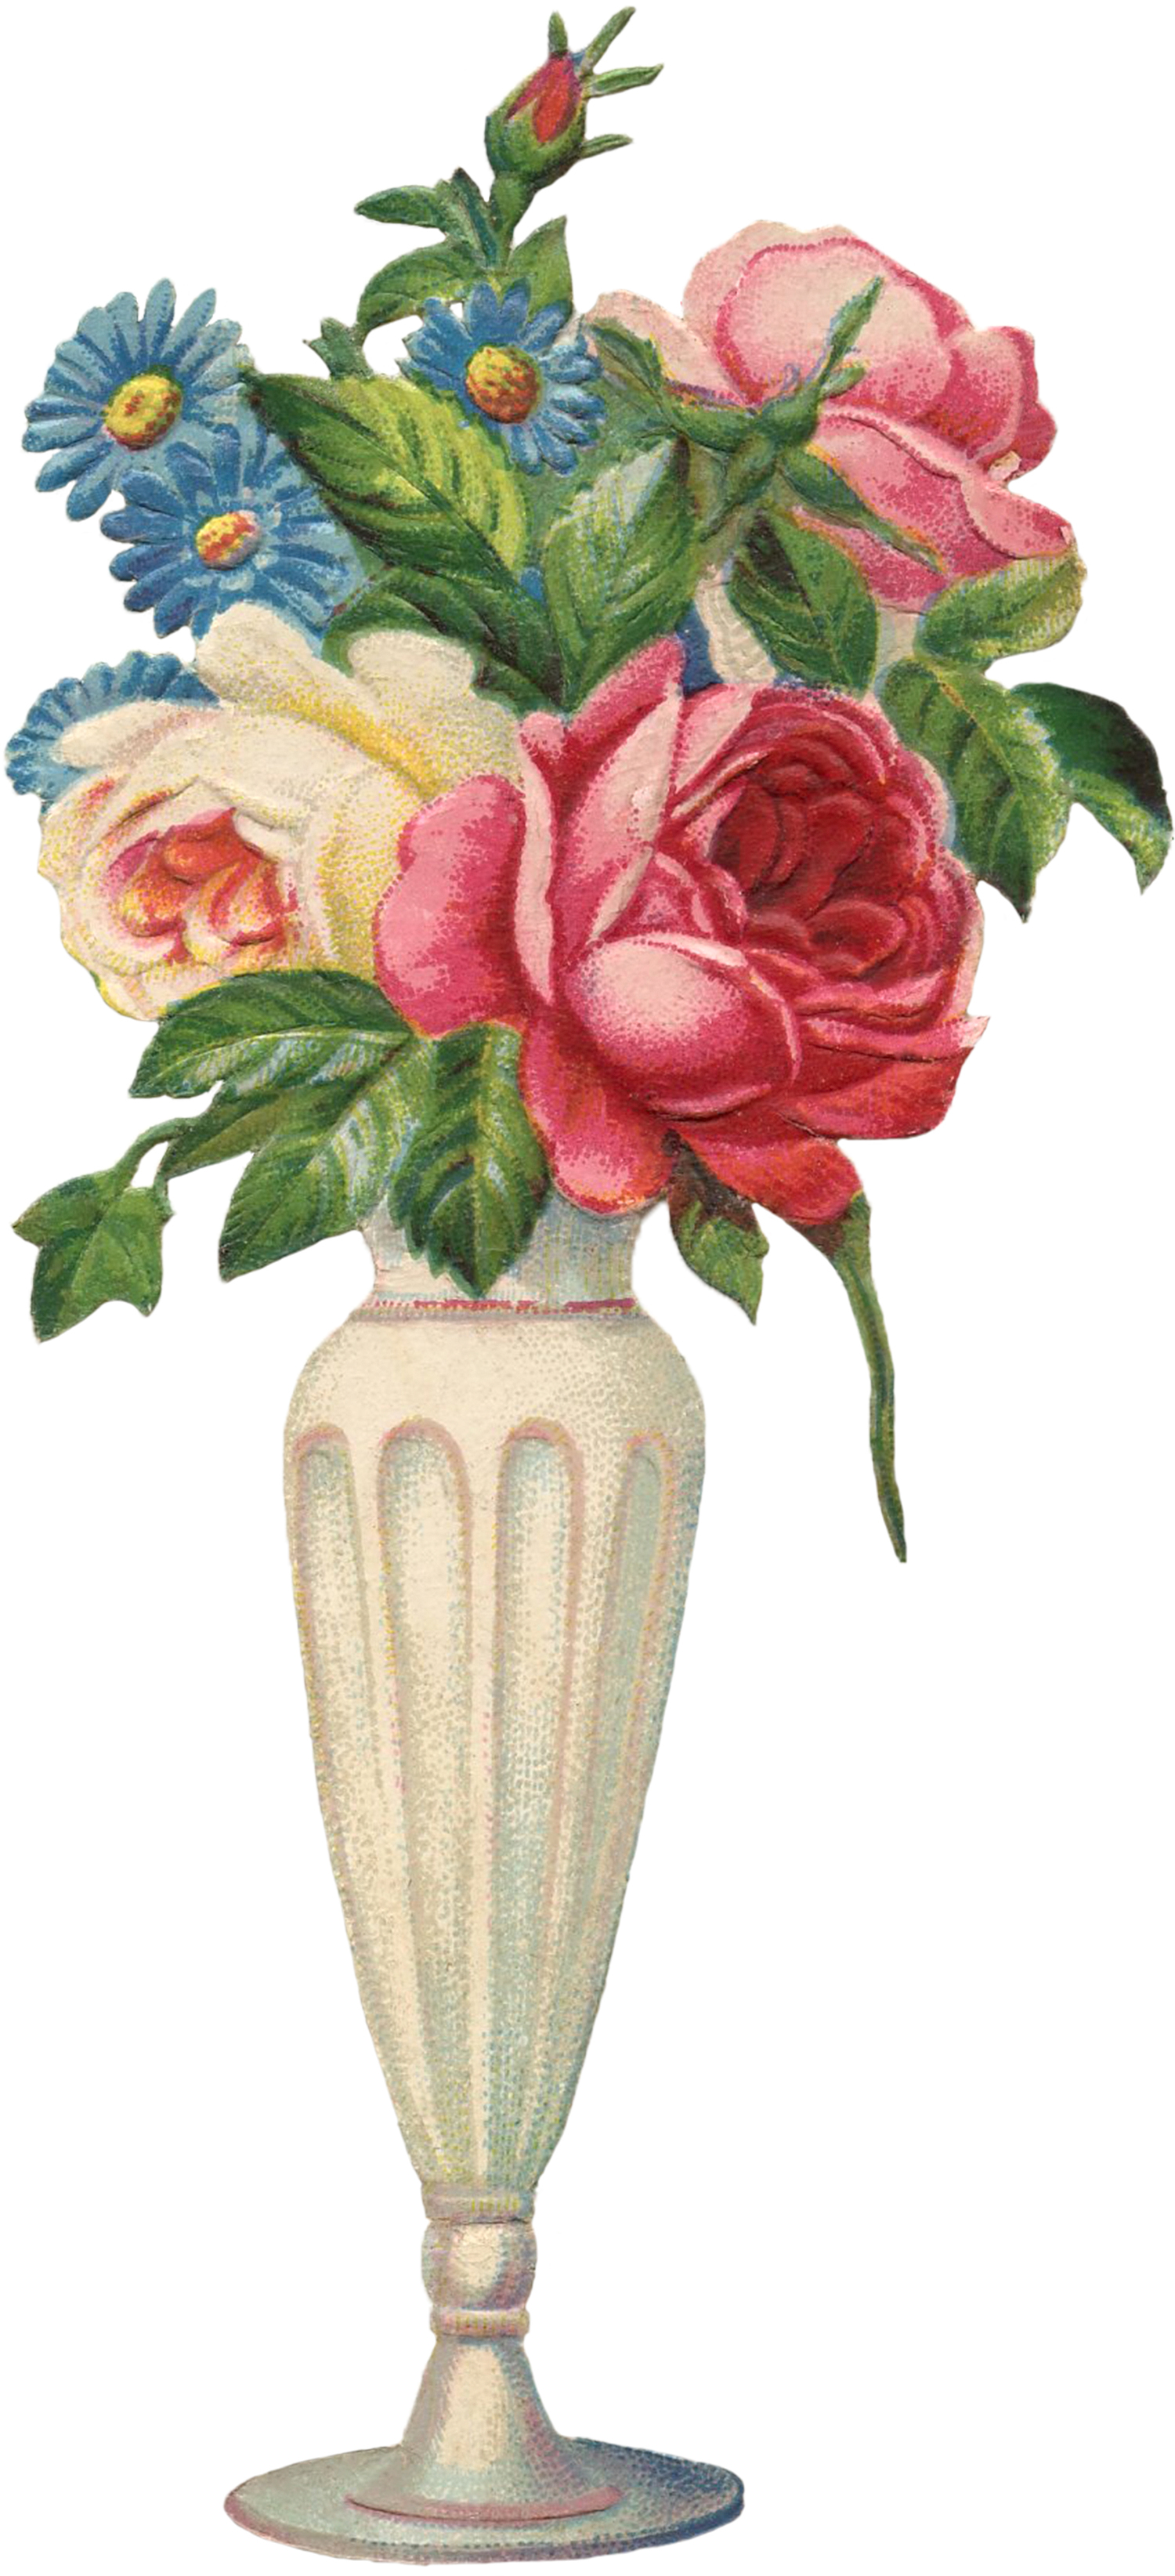 Vintage flowers vase image the graphics fairy vintage flowers vase image mightylinksfo